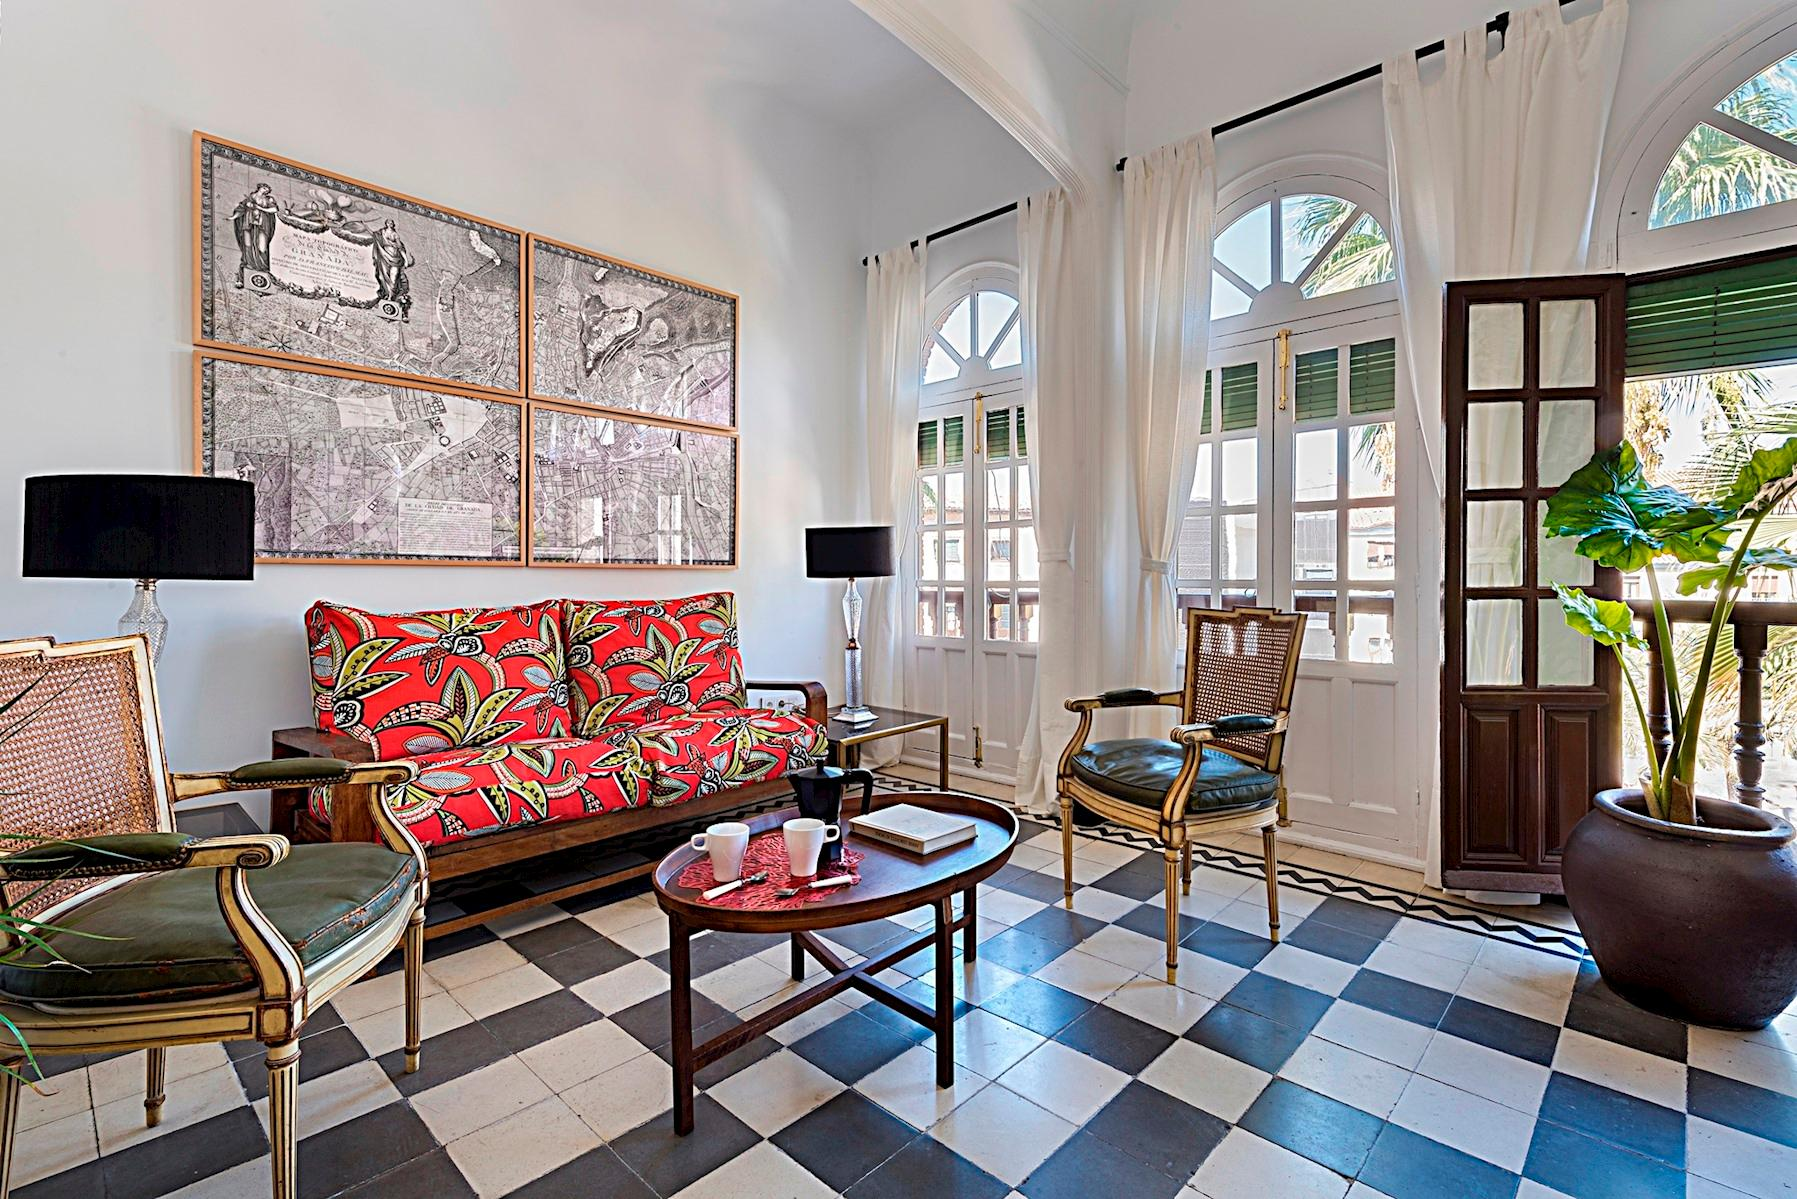 Stylish Romanilla Apartment near Cathedral of Granada